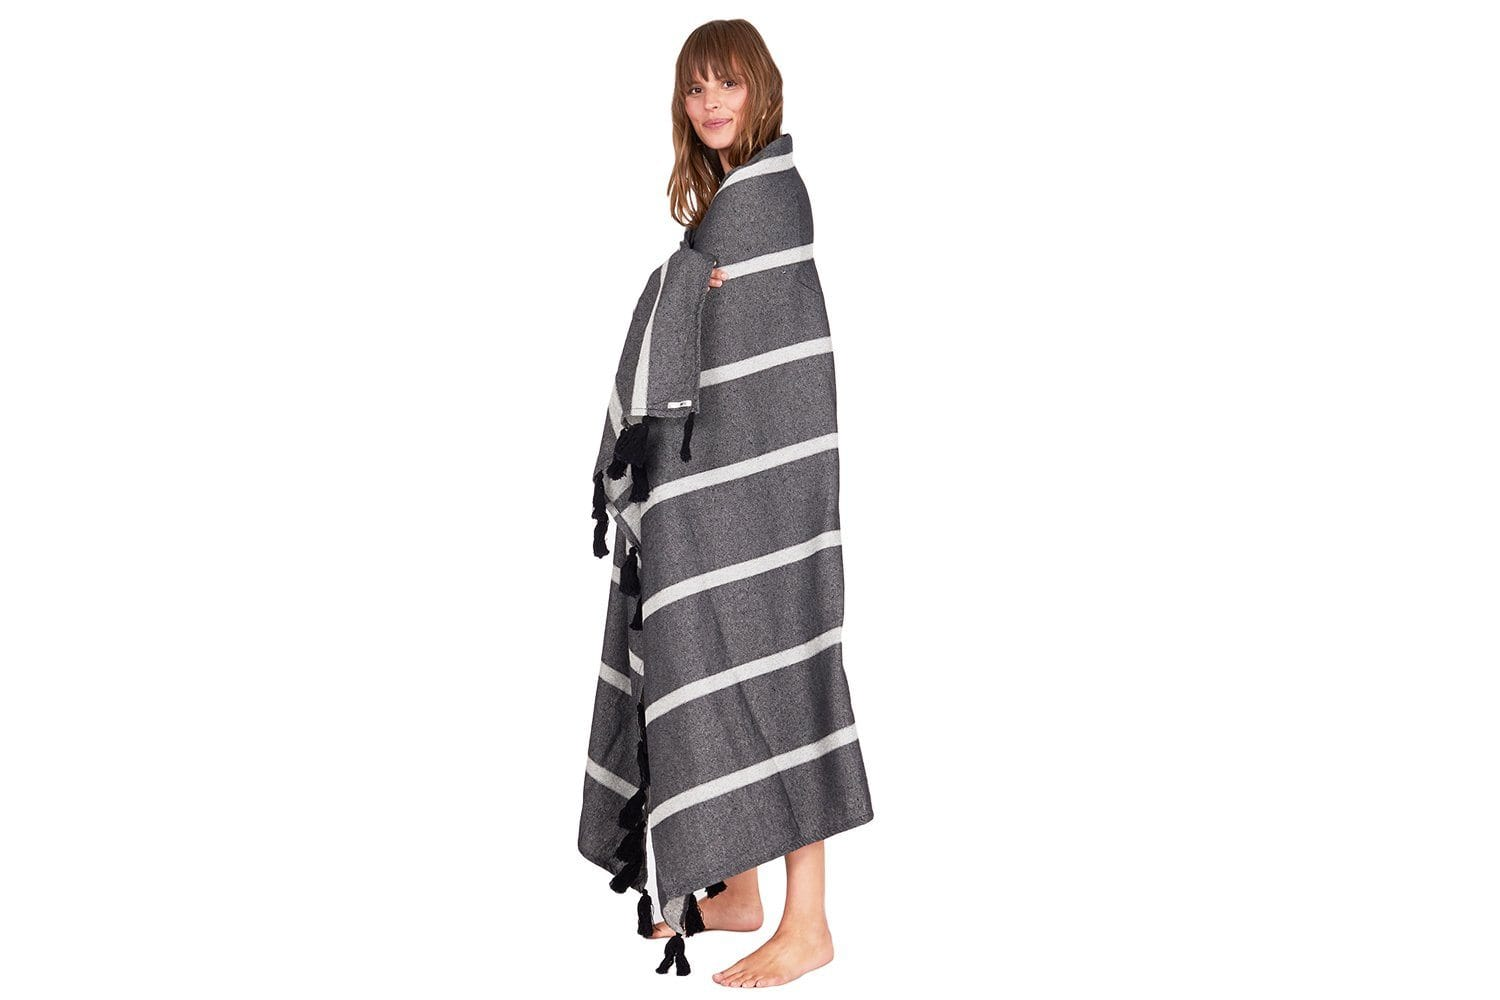 FINE LINE BLANKET - AA03KFIN WOMENS SOFTGOODS AMUSE SOCIETY BLACK